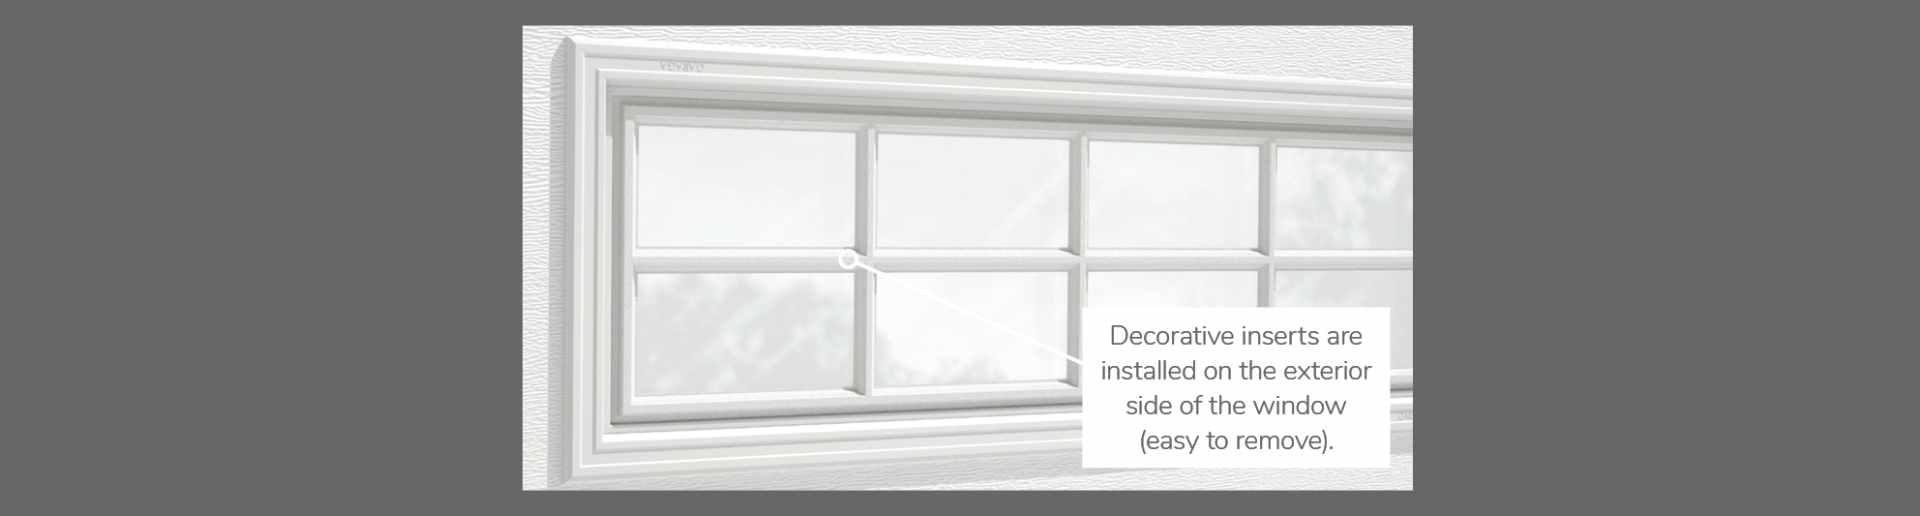 "Stockton Decorative Insert, 40"" x 13"" or 41"" x 16"", available for door R-16, R-12, 3 layers - Polystyrene, 2 layers - Polystyrene and Non-insulated"